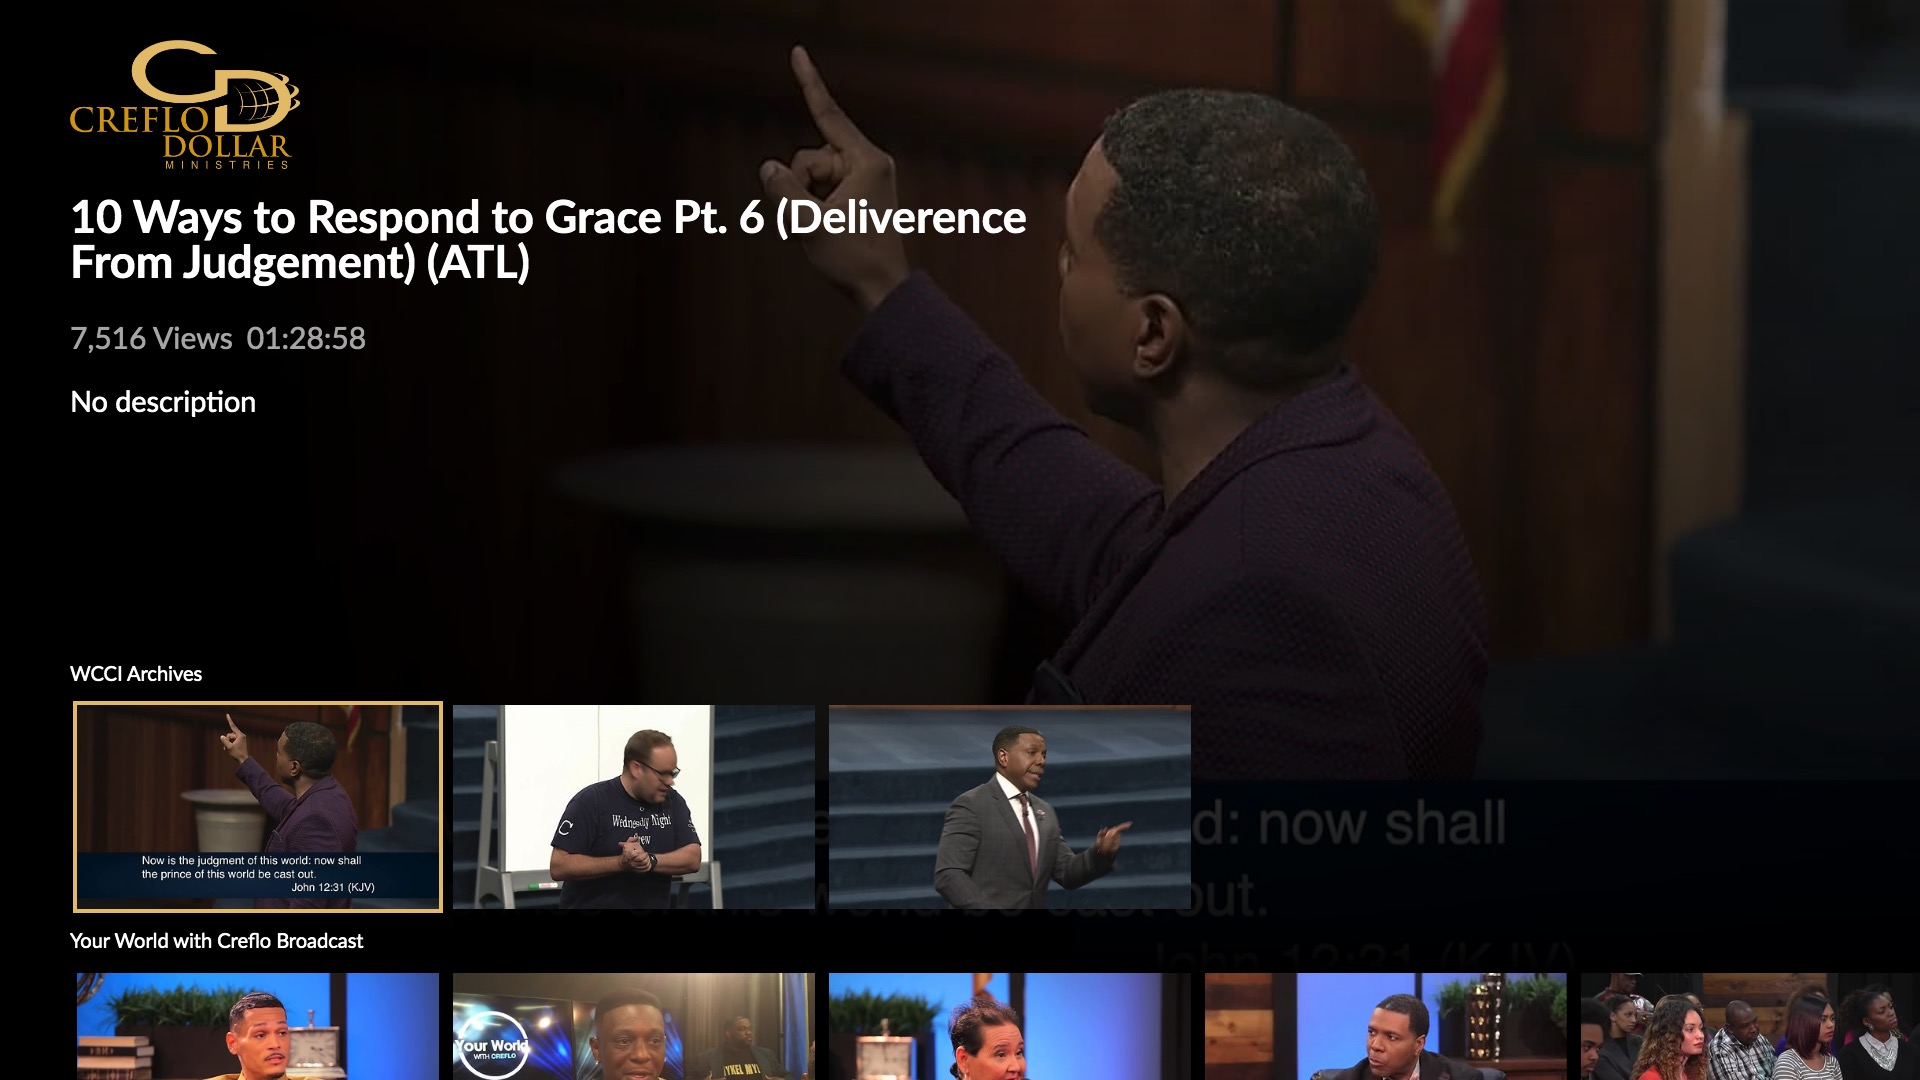 Creflo Dollar Ministries Screenshot 002